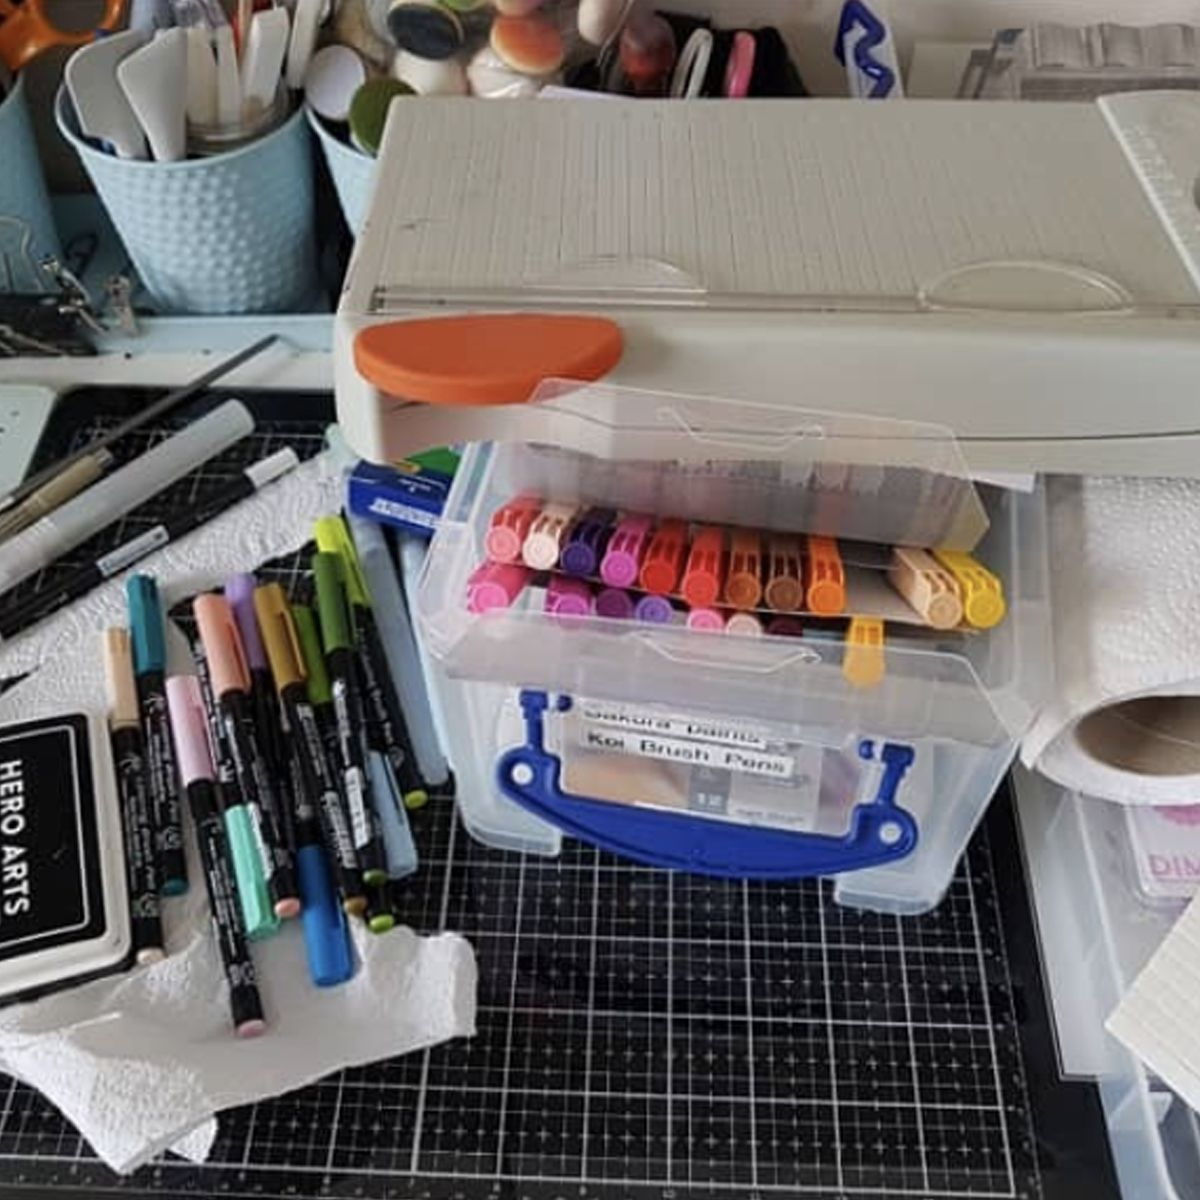 Time for some #wednesdaycrafting #repin  #making #digitalart #craftlife #digitalartist  #handcrafted #make #craft #handmadecrafts #crafts #craftsy #creative #create #scrapbooking #craftymom #craftnotcrap #diy #diycrafts #thedailymarker #copicmarkers #colouring #coloring #pencilcoloring #spectrumnoir